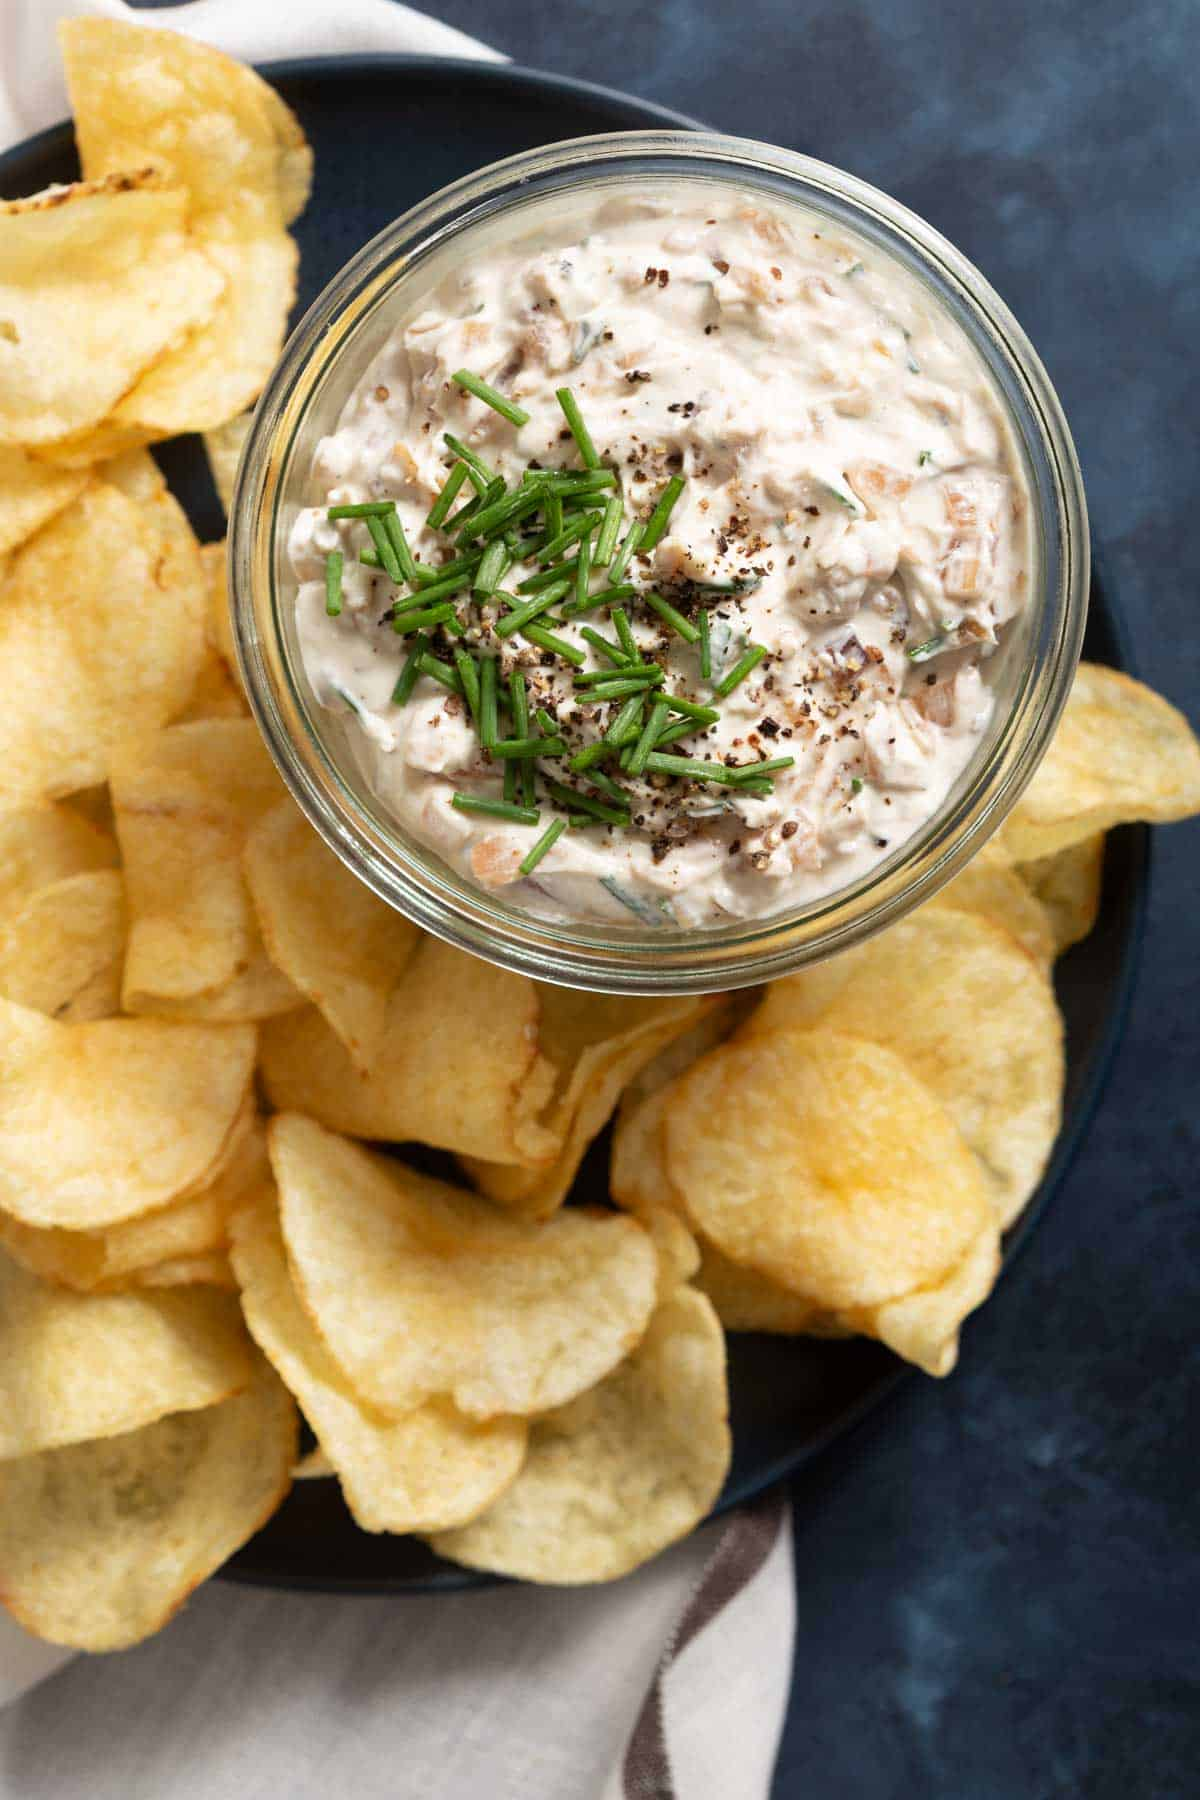 Close up of a glass jar full of white dip with chips on the side